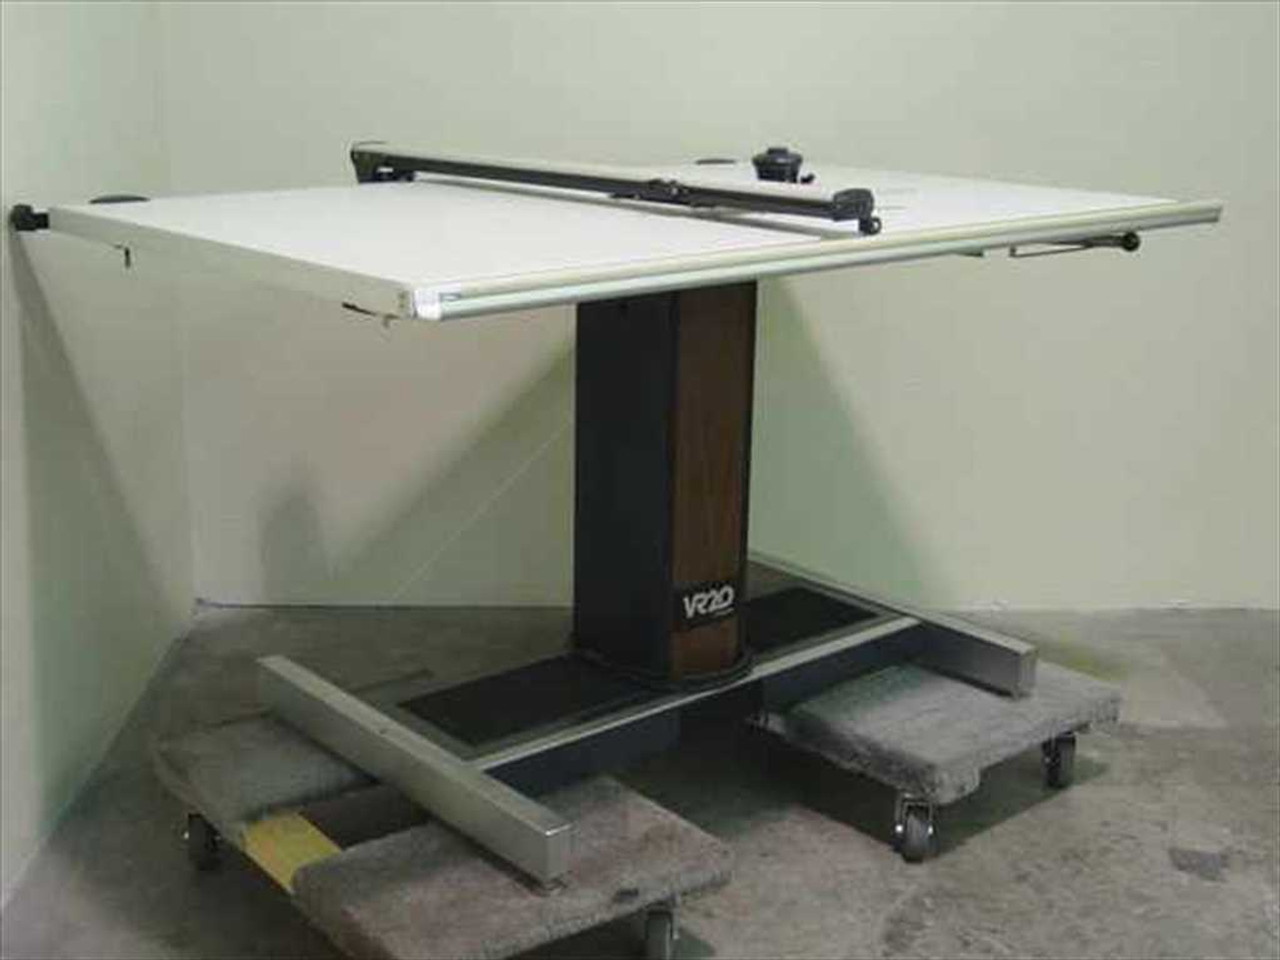 Hamilton Vr20 Drafting Table Cost To Ship Hamilton Vr20 Electric Drafting Table From Liverpool